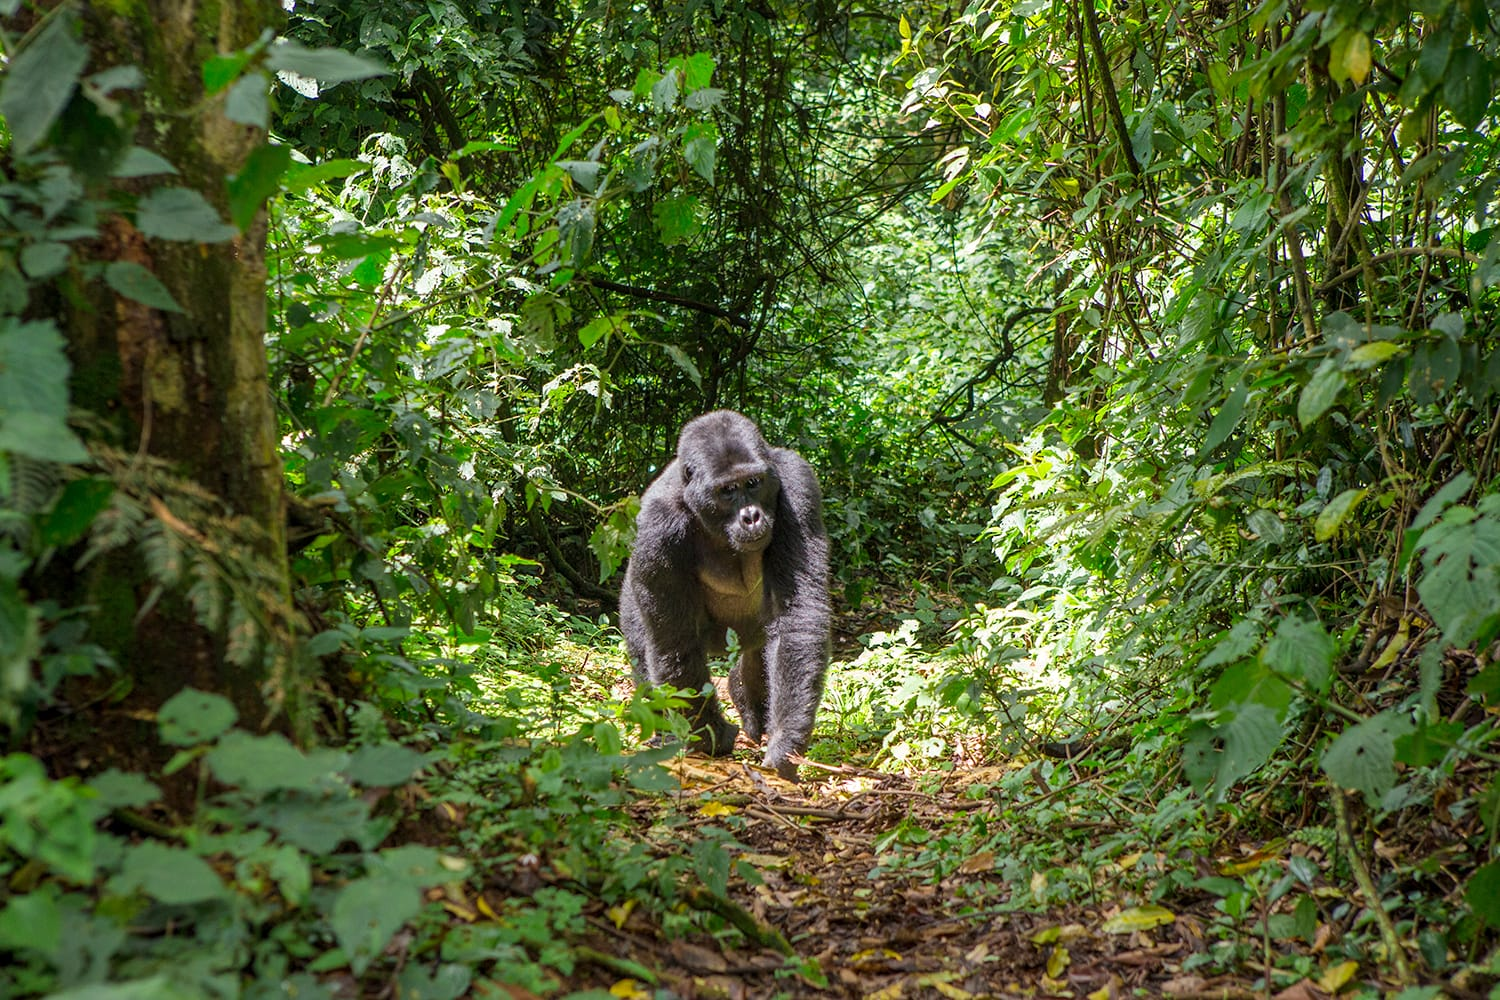 Mountain gorillas in the rainforest. Uganda. Bwindi Impenetrable Forest National Park